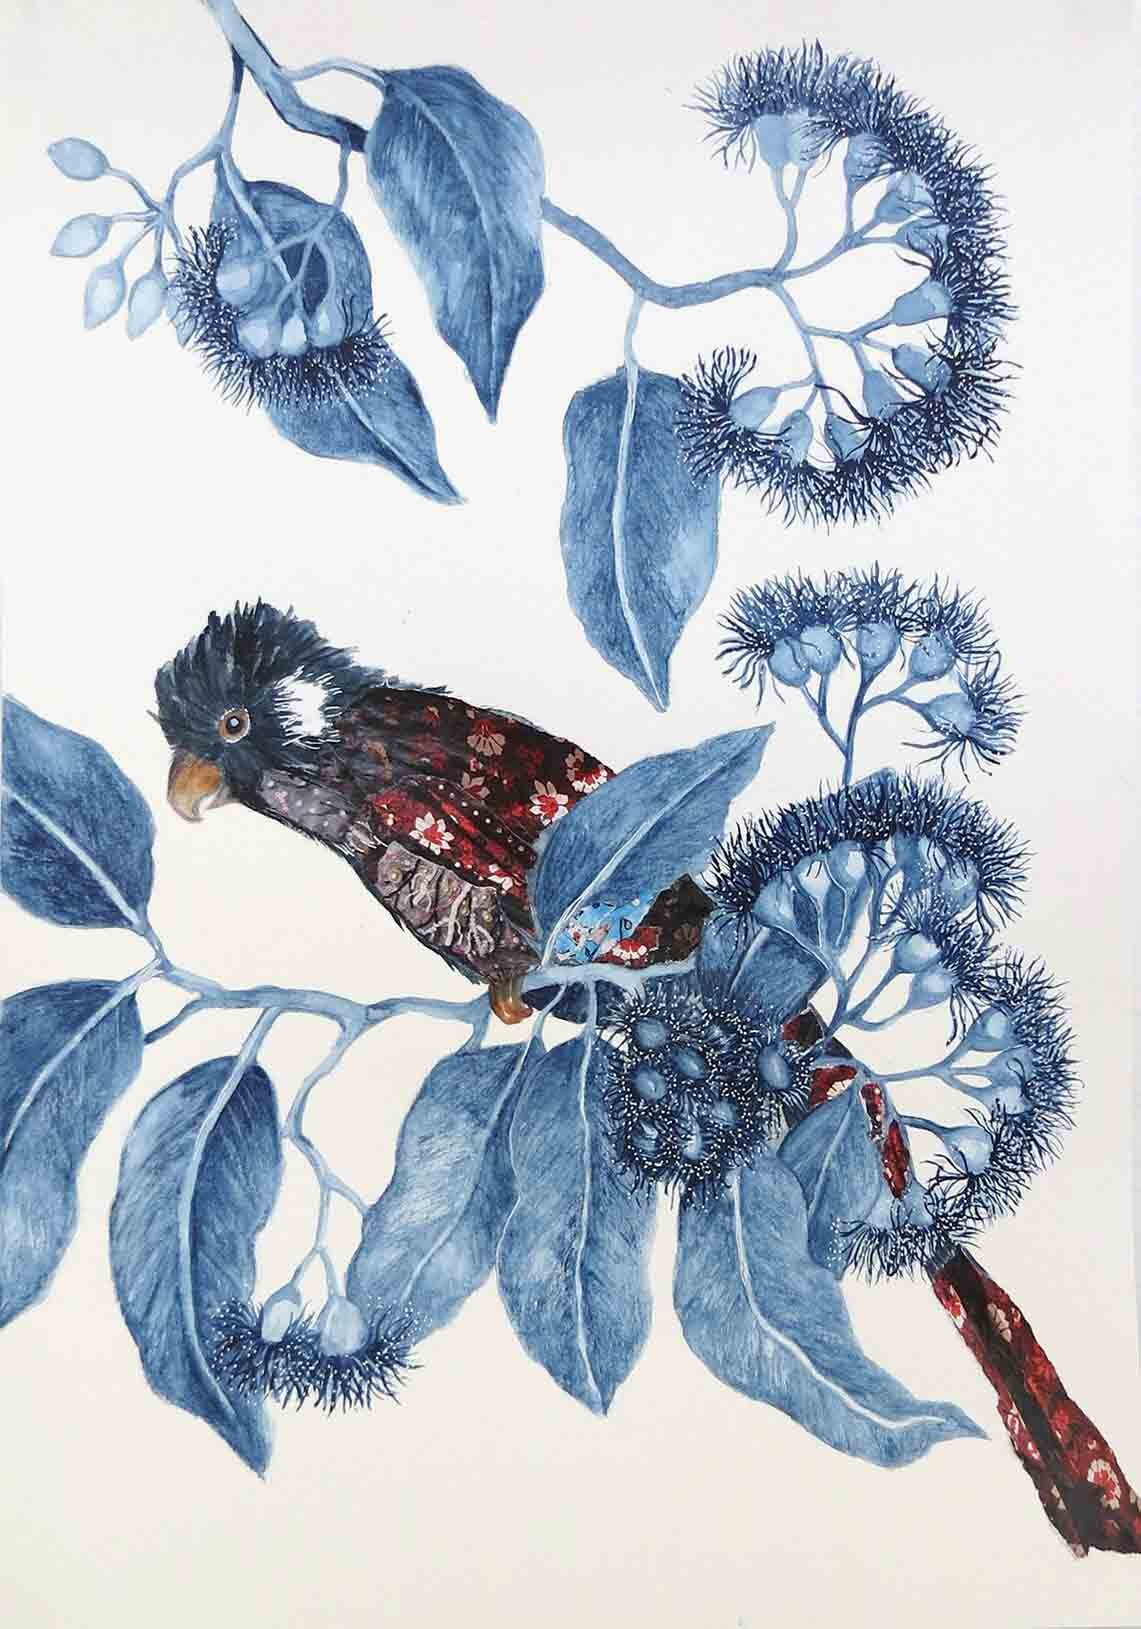 5. Jude Willis, Corymbia ficifolia with Carnaby's Cockatoo, 2019, watercolour and collage on paper, 42 x 29.5 cm $290